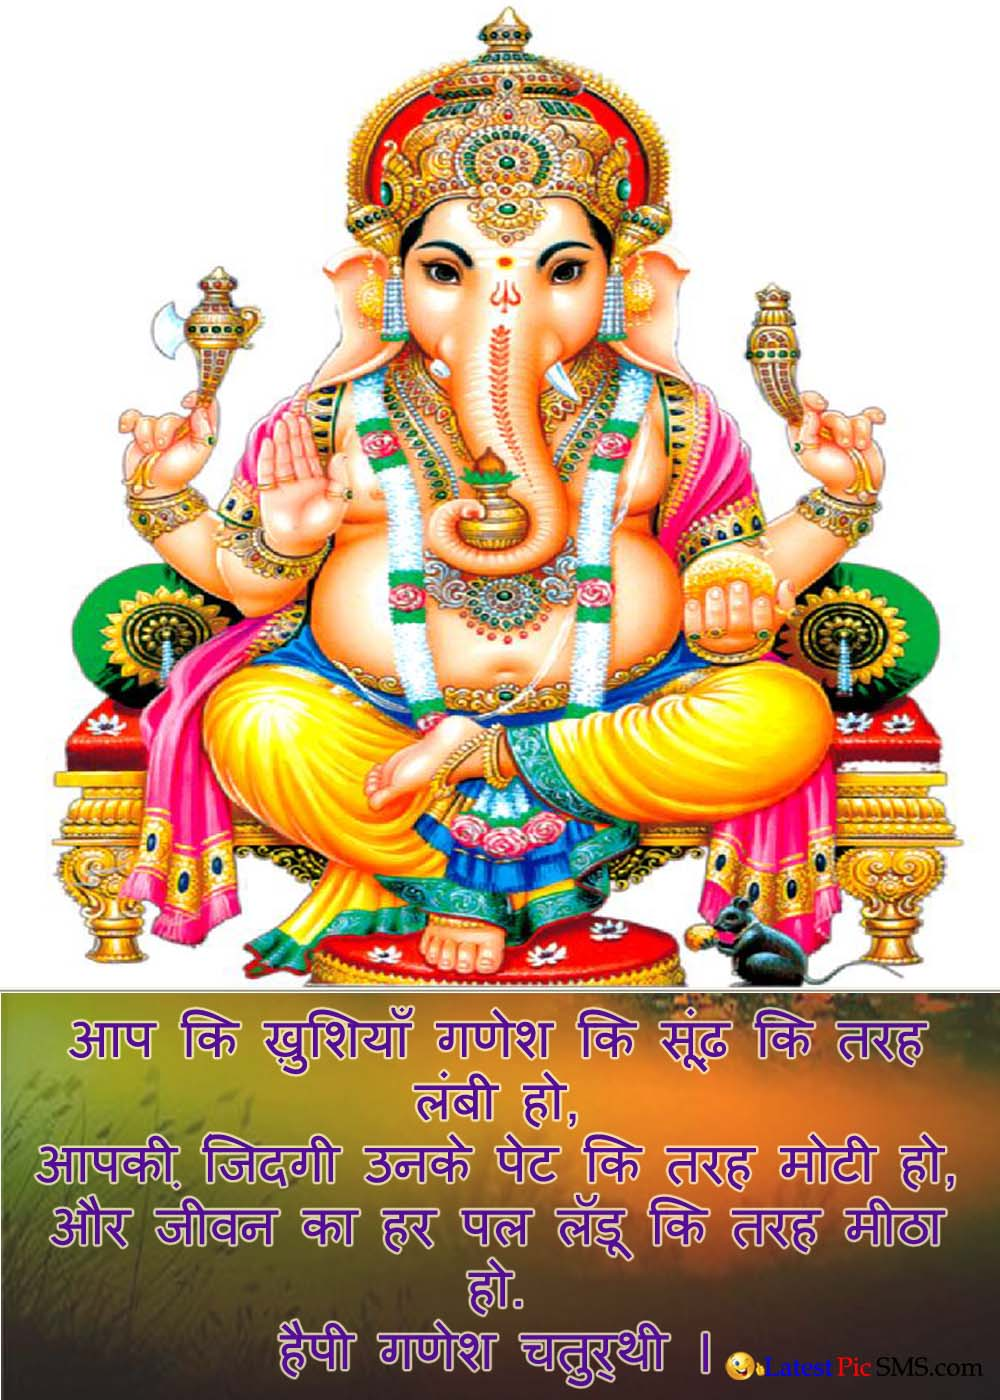 Happiness on Ganesh chaturthi Image Quotes